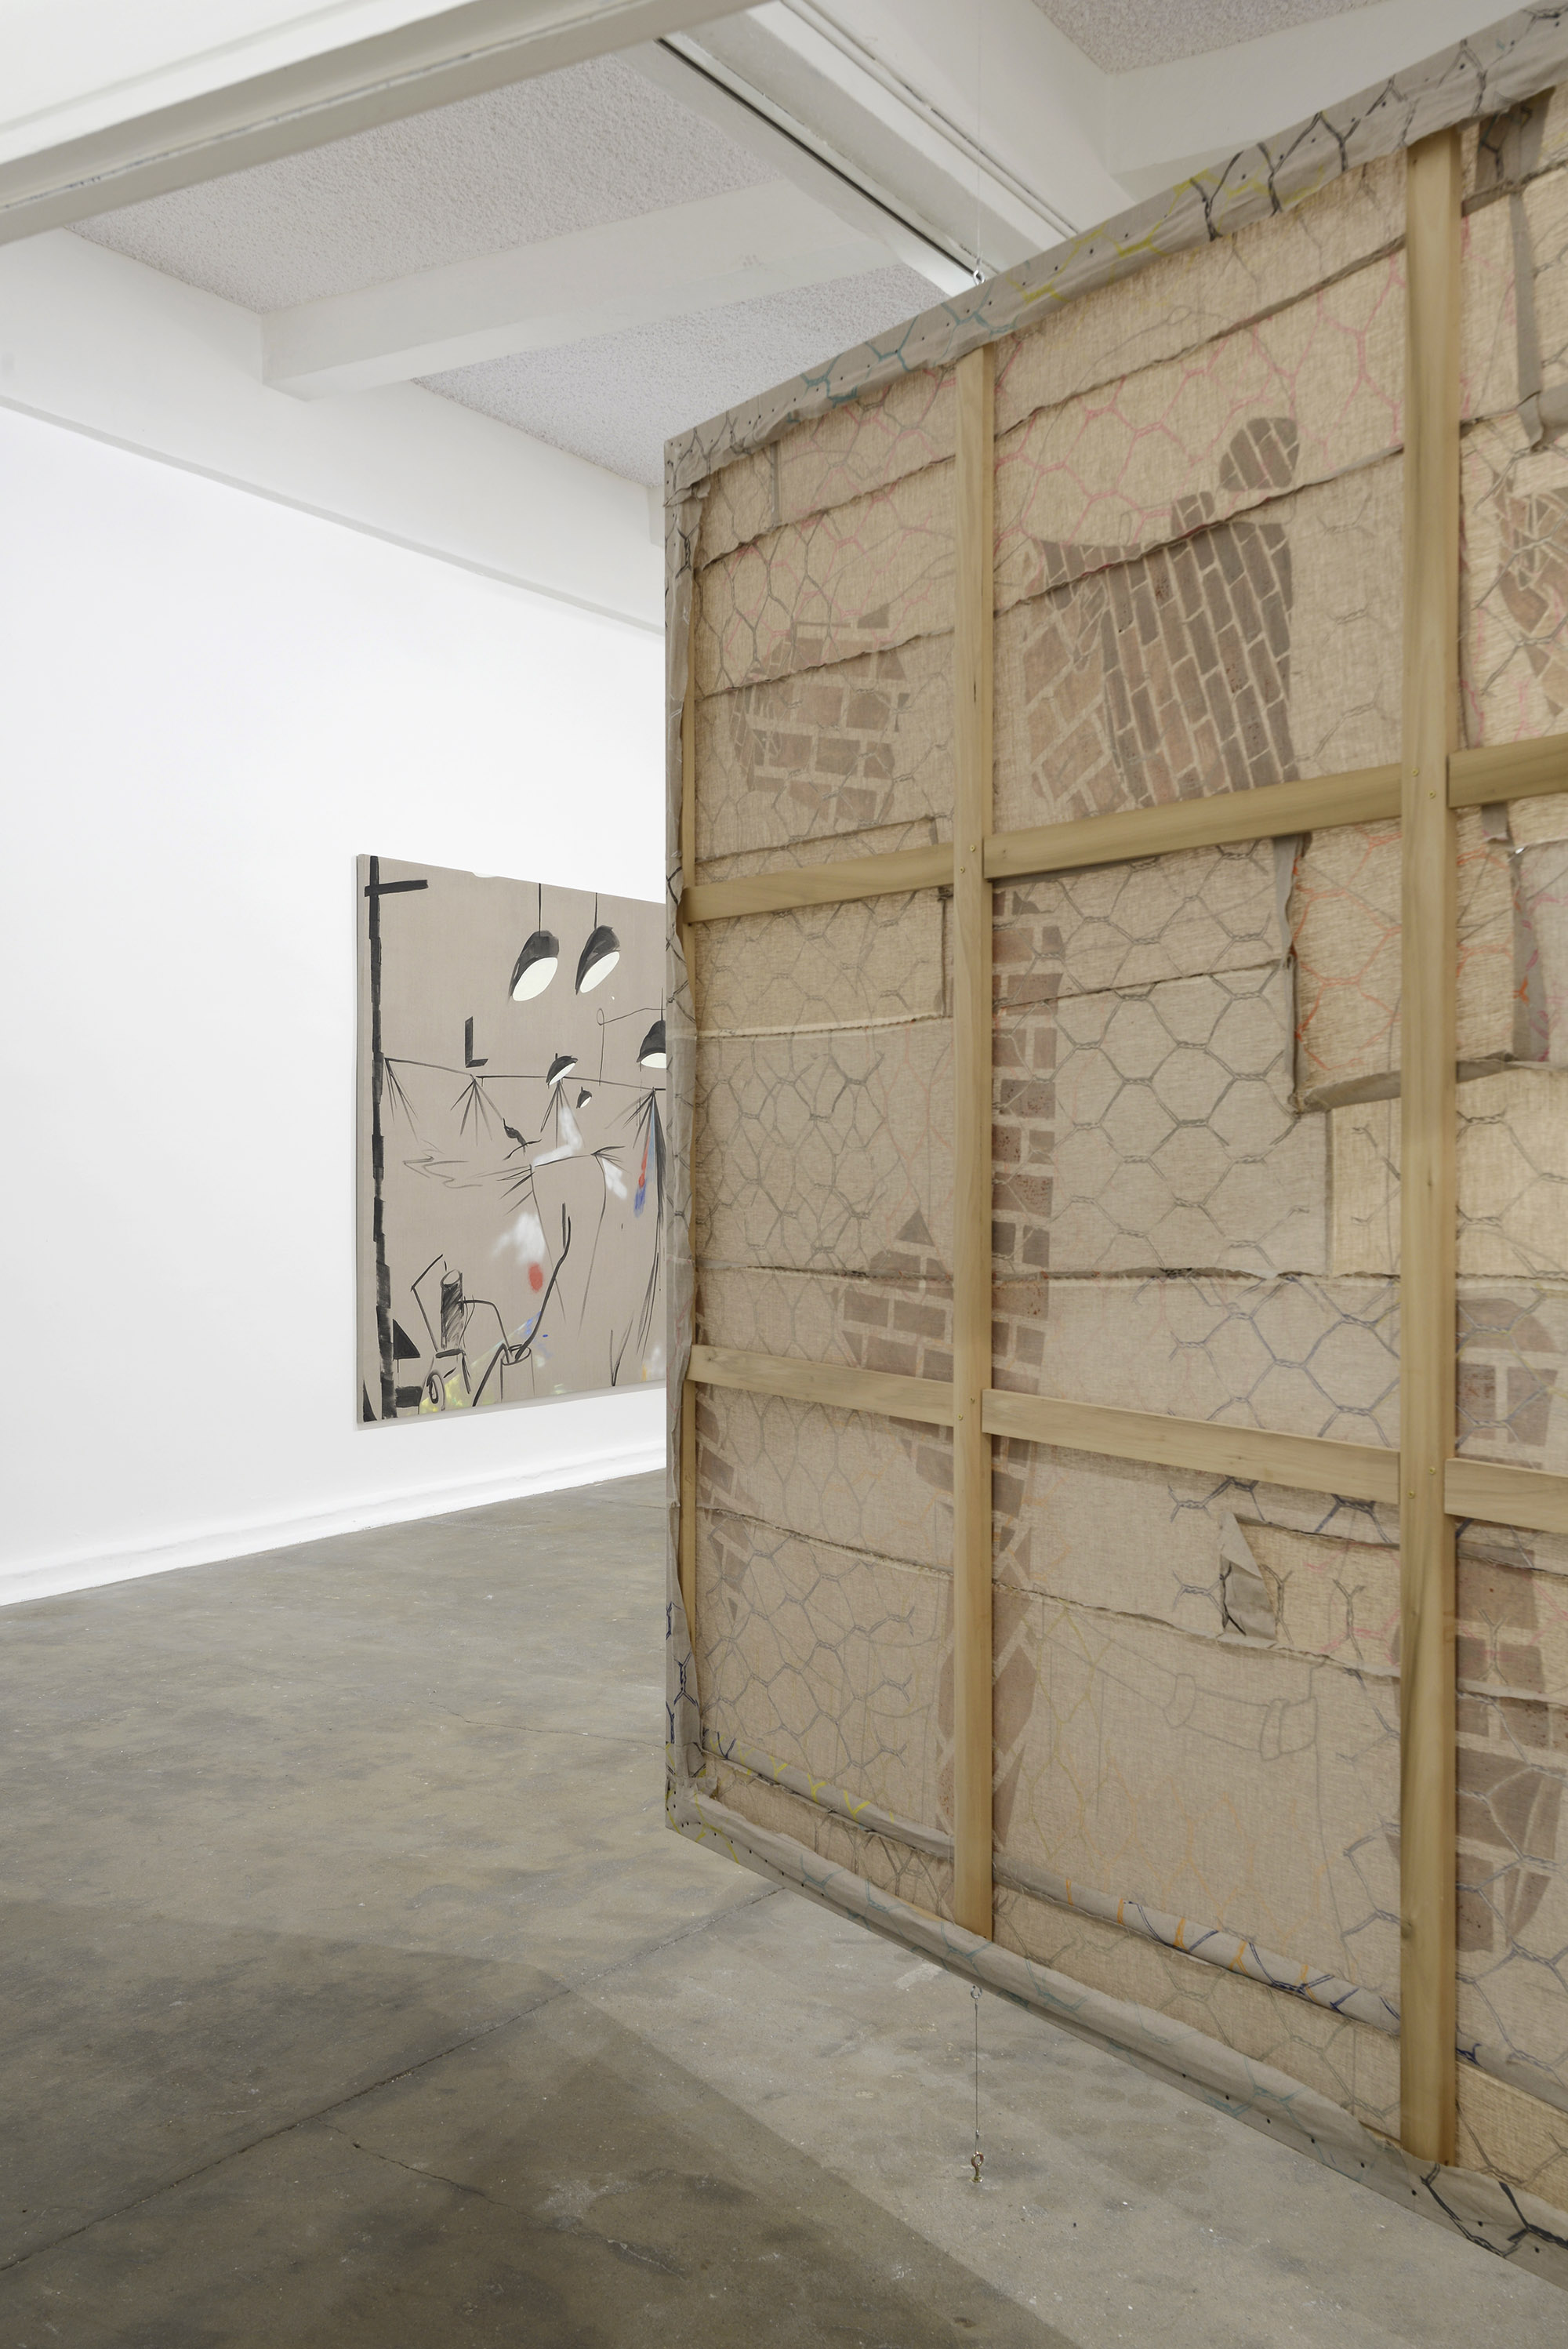 9 - Caragh Thuring at Chisenhale Gallery London